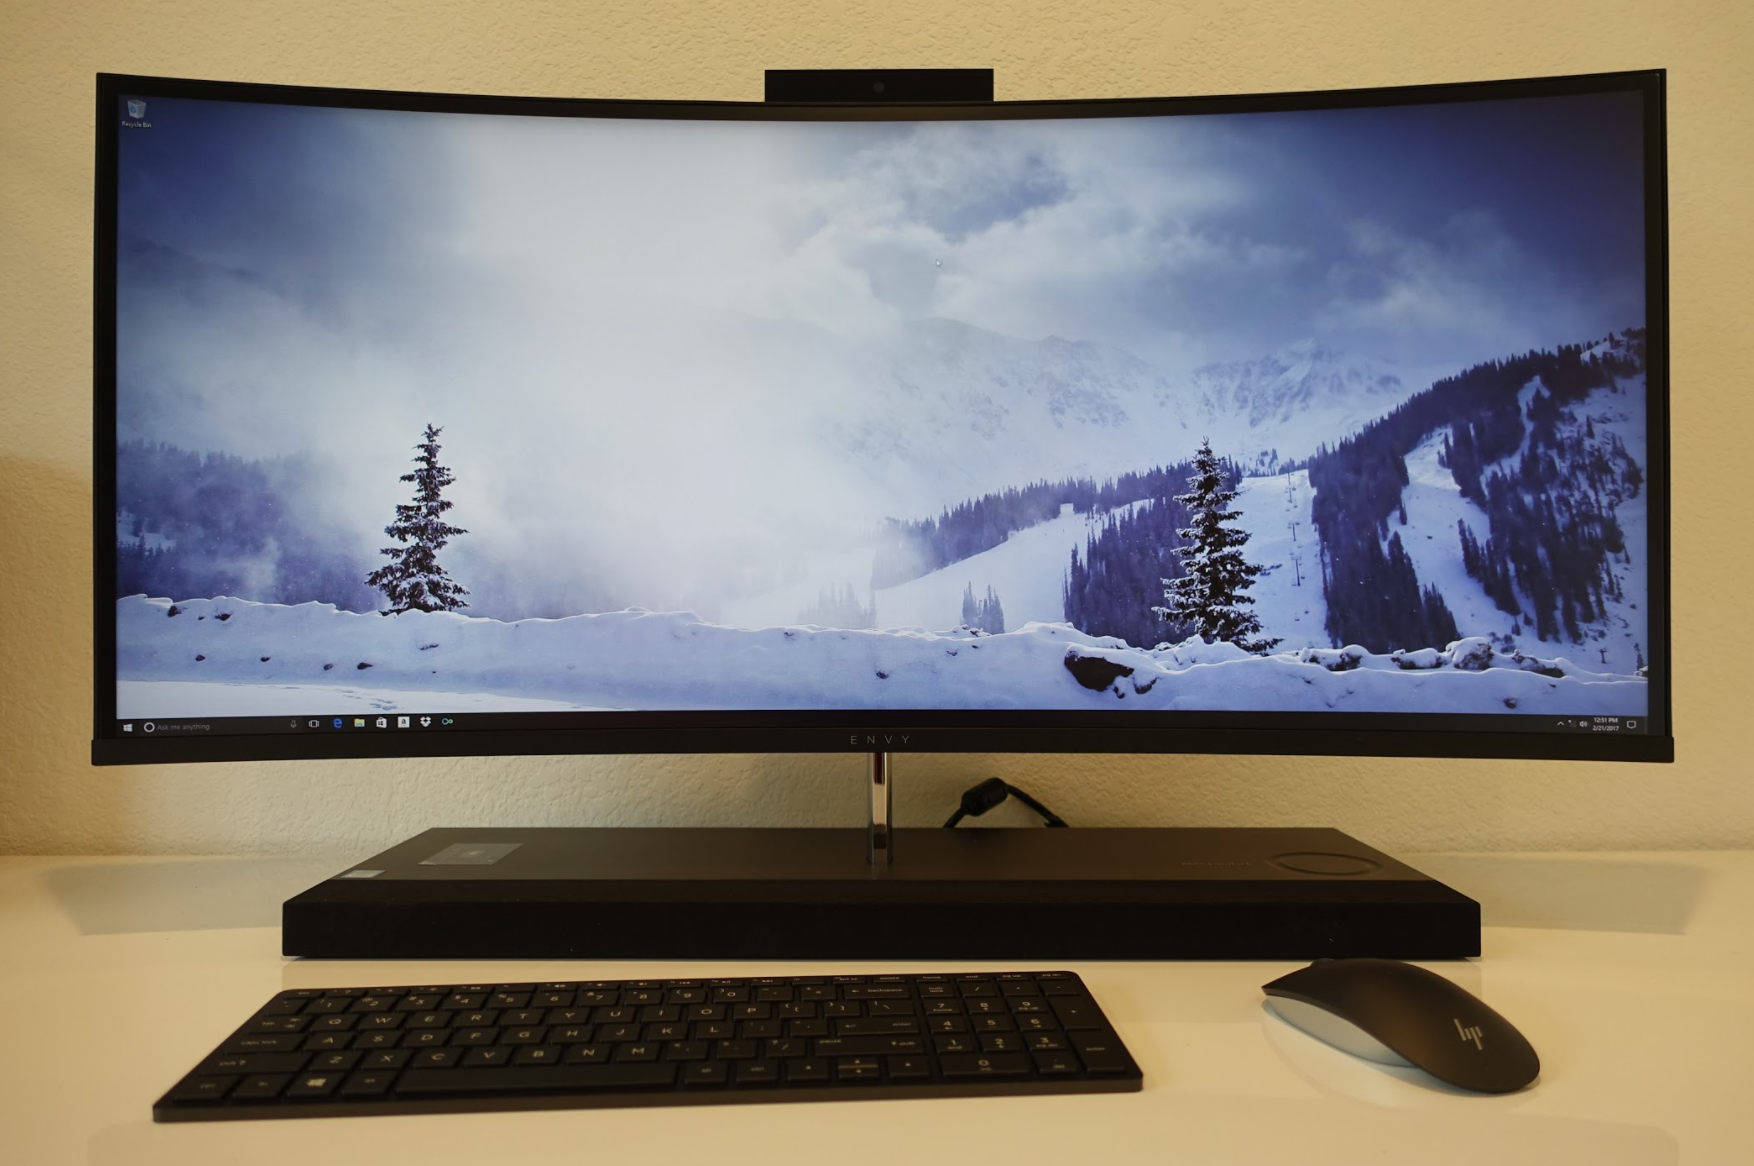 HP Envy Curved AIO 34: The New Centerpiece of Your Office